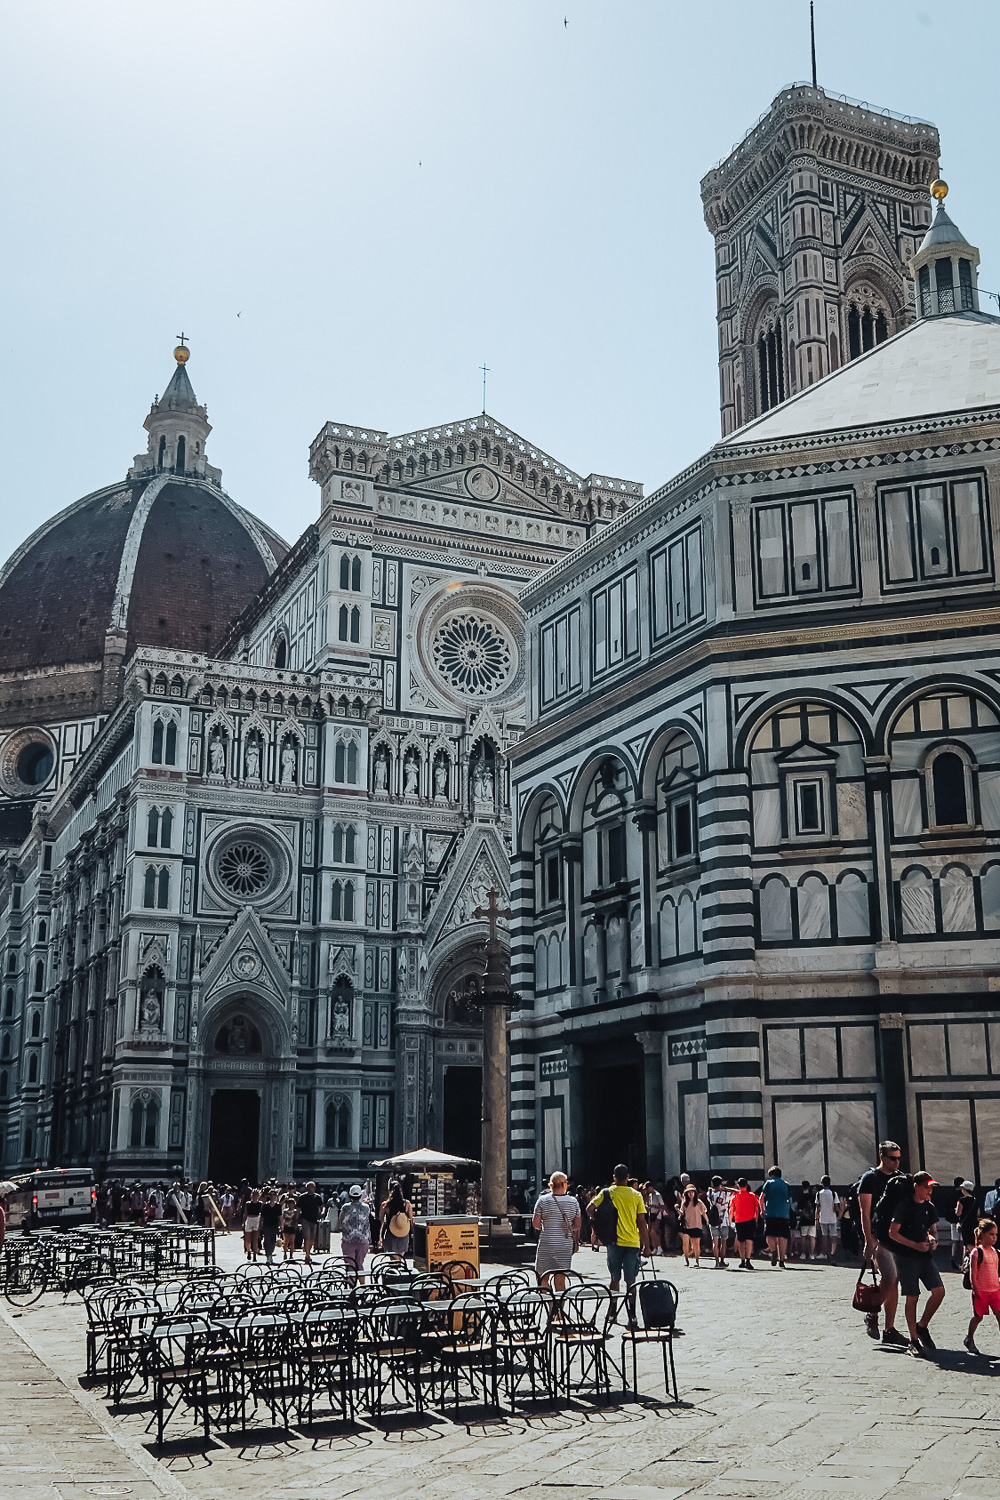 Cathedral of Santa Maria del Fiore in Piazza del Duomo | How to Spend 48 Hours in Florence | Tuscany, Italy | Mondomulia